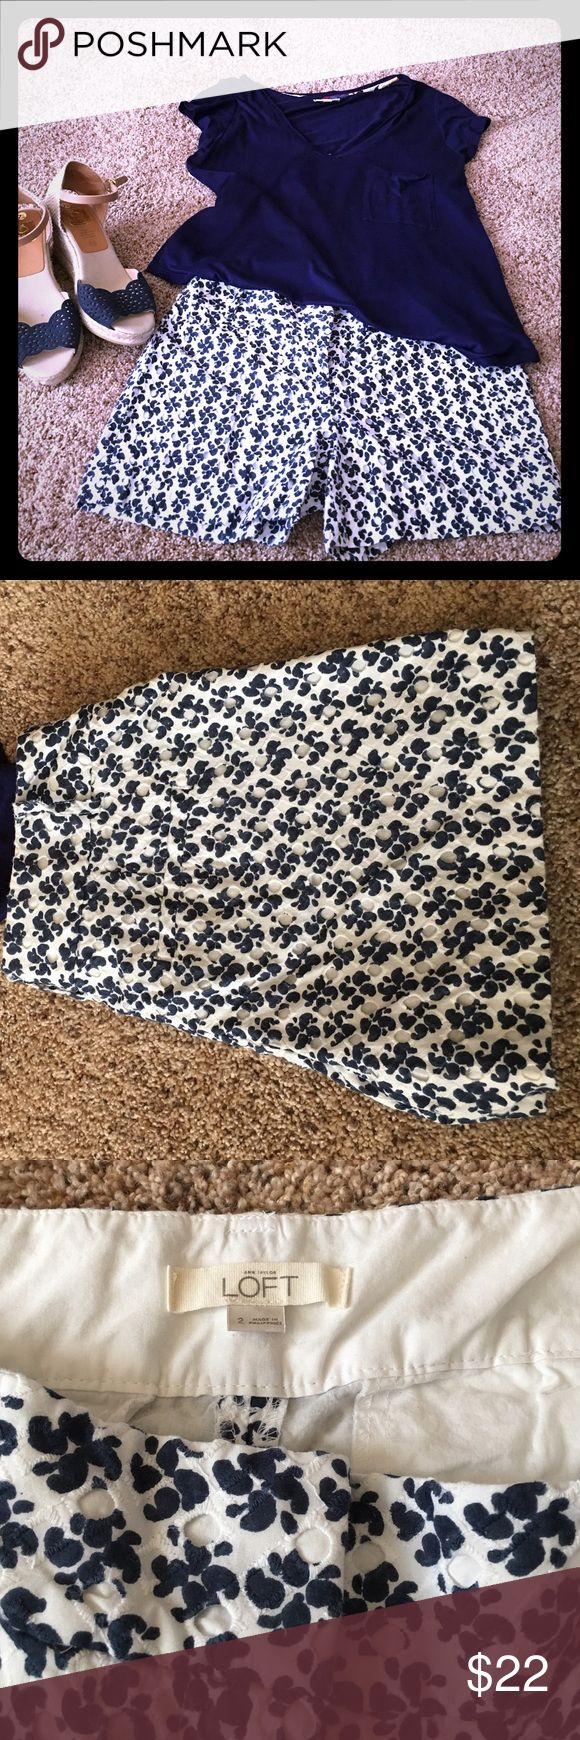 Like New Eyelet Shorts Super cute pair of navy and white eyelet shorts. Dress up with heels or go casual with a tank n flip flops! No pockets. 3 inch inseam. LOFT Shorts